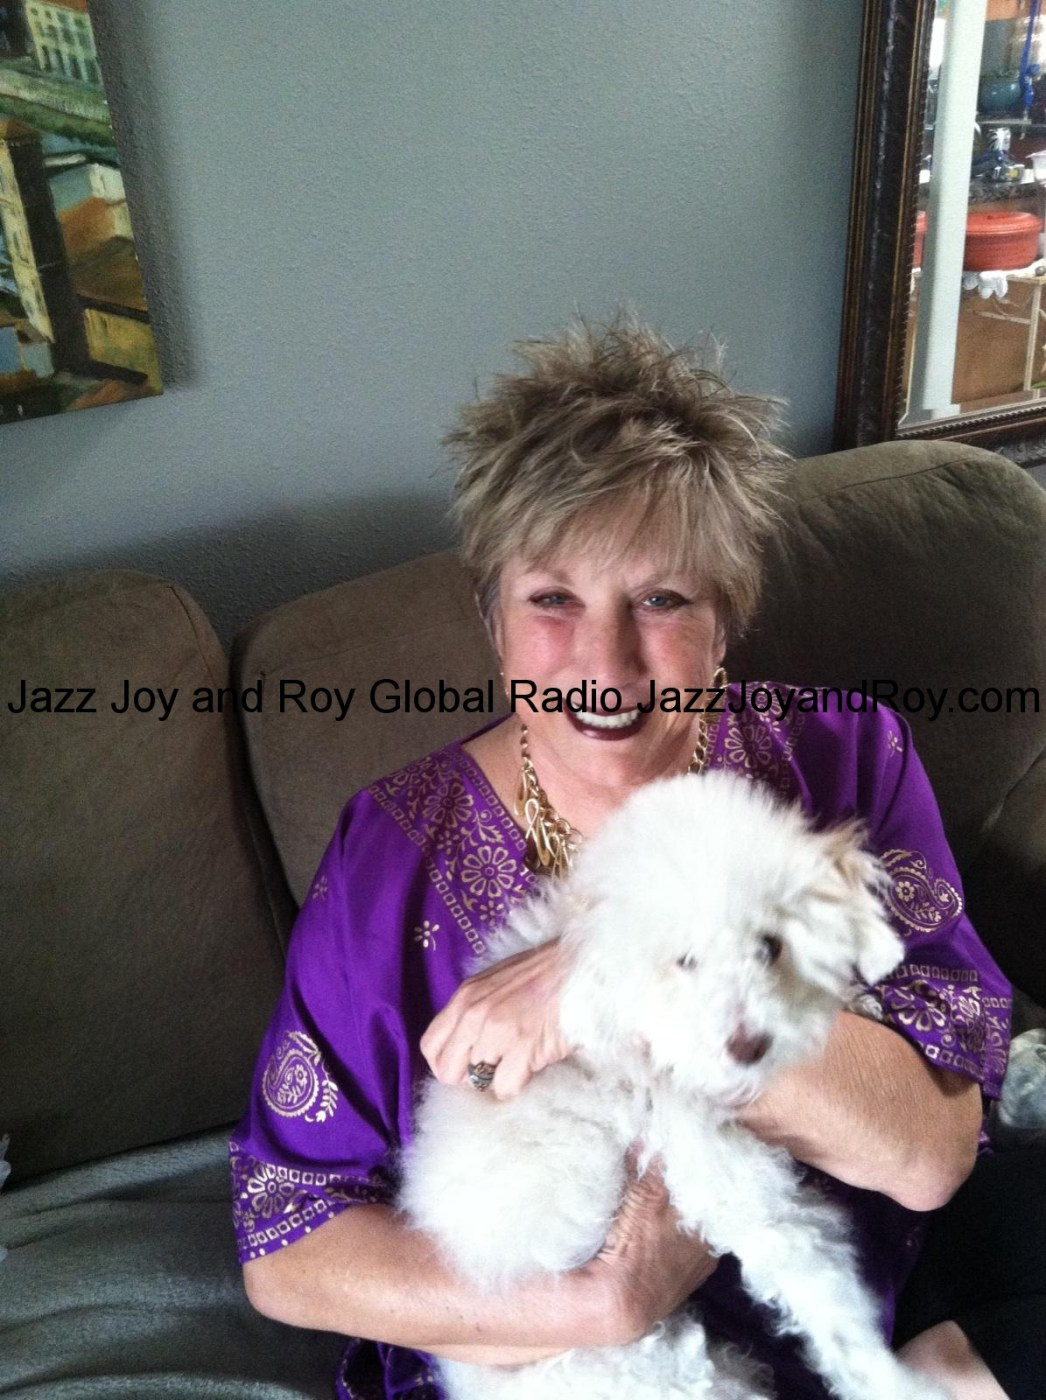 Beautiful Kathy with the family dog. Kathy's hubby Roy loves how Sylvana styles Kathy's hair